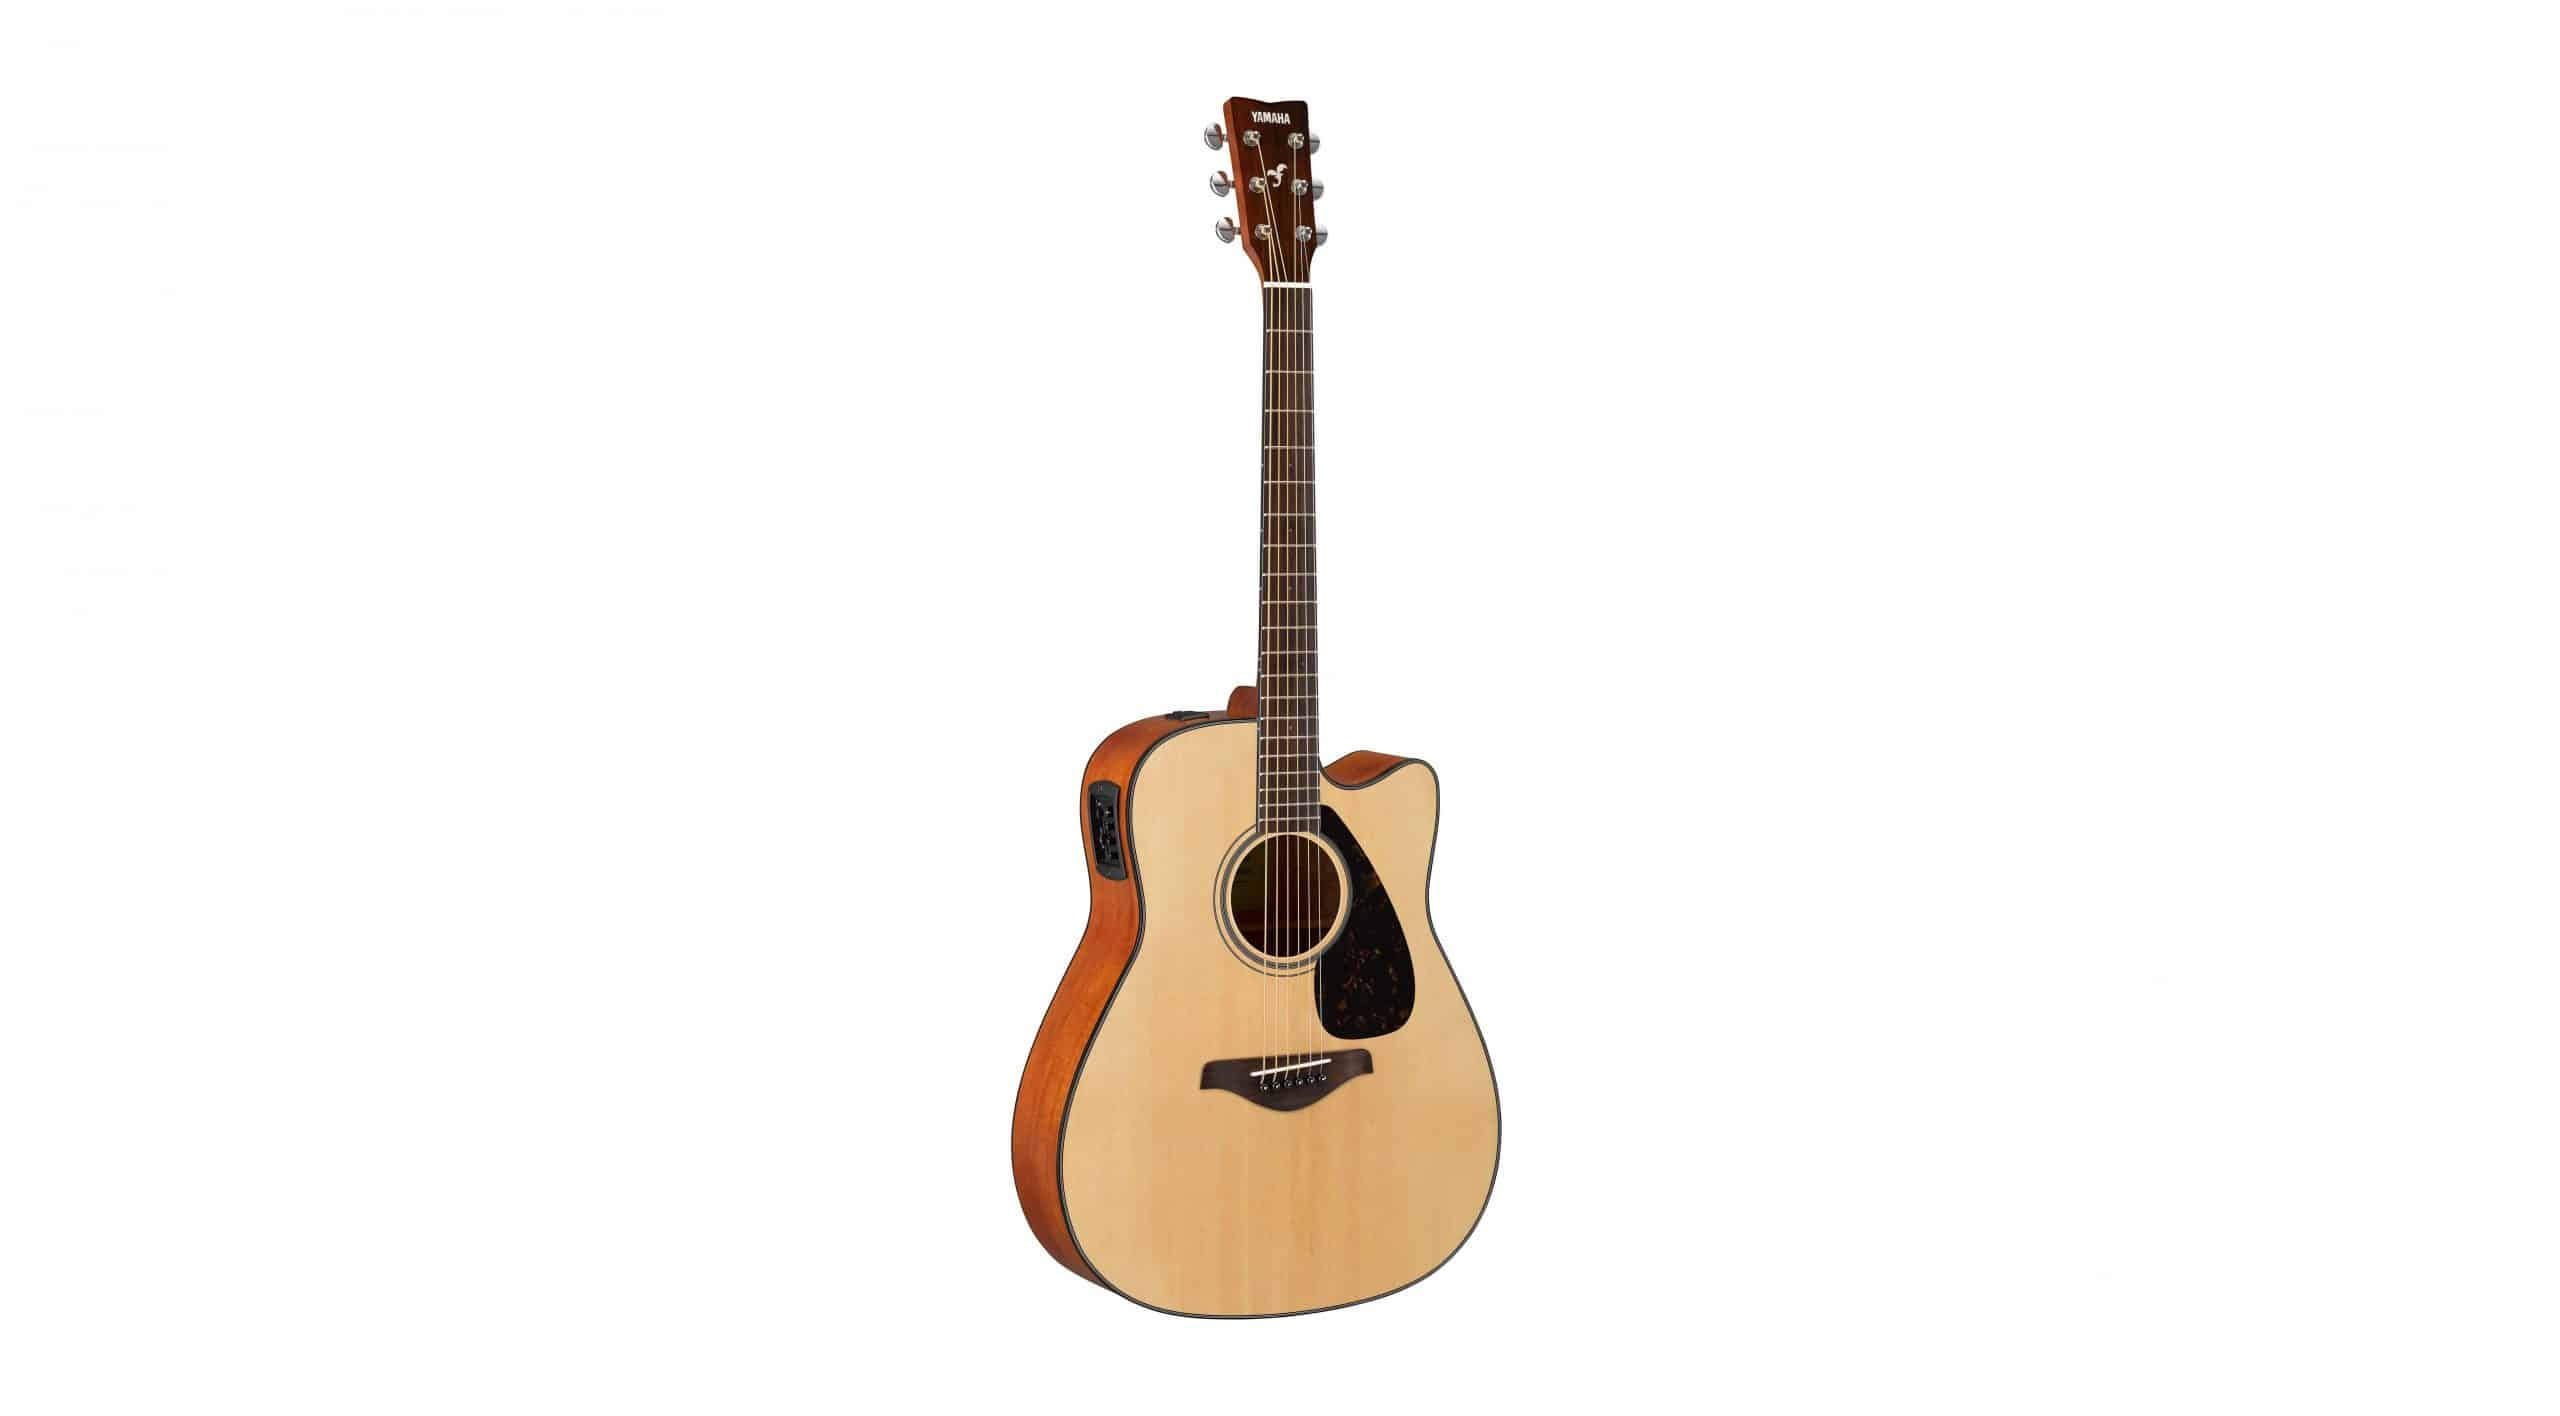 Yamaha FGX800C Acoustic Electric Guitar Review